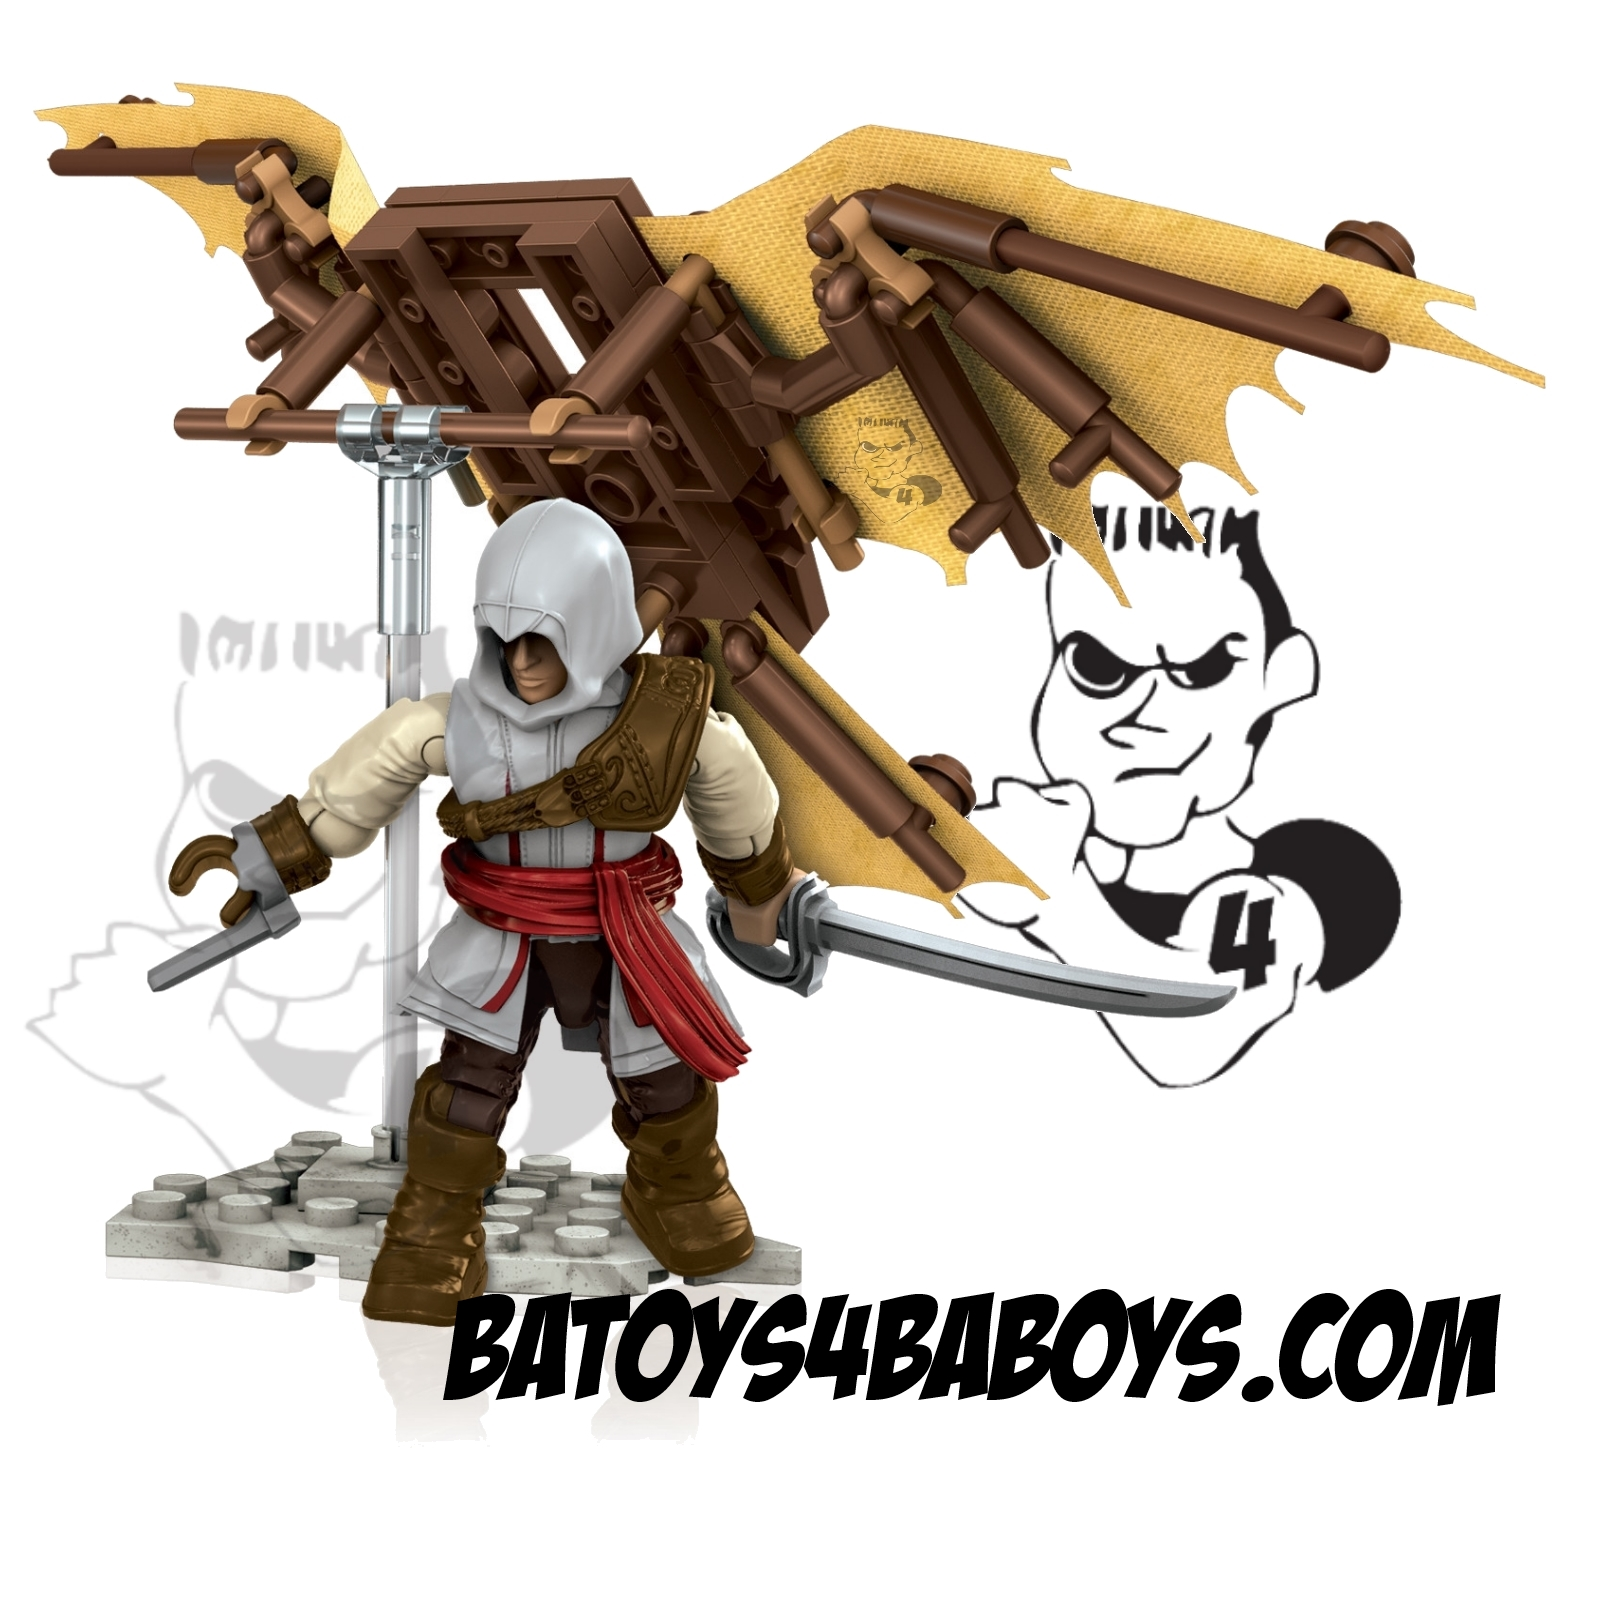 2014 Mega Bloks Assassin's Creed Da Vinci's Flying Machine